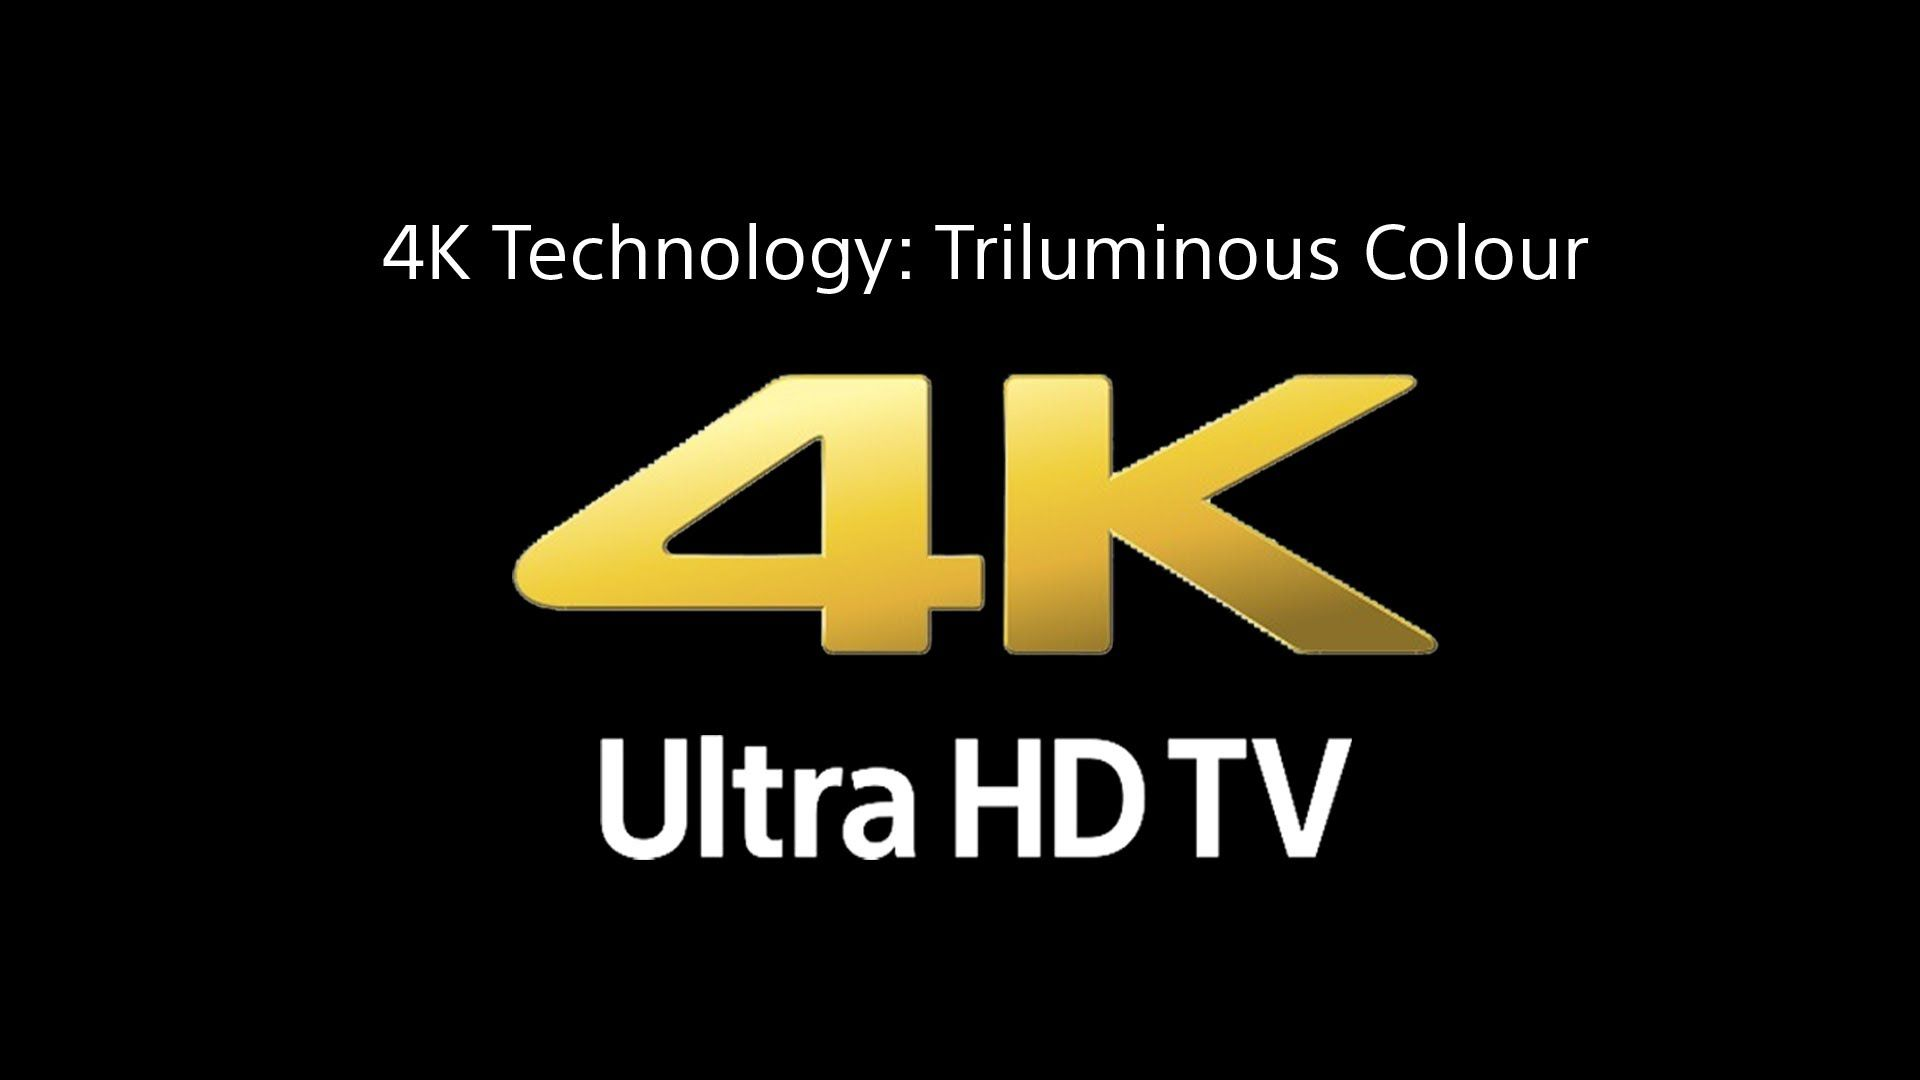 Triluminos colour on sony bravia and 4k tv 39 s sony 4k and hd television war sony national - Sony bravia logo hd ...